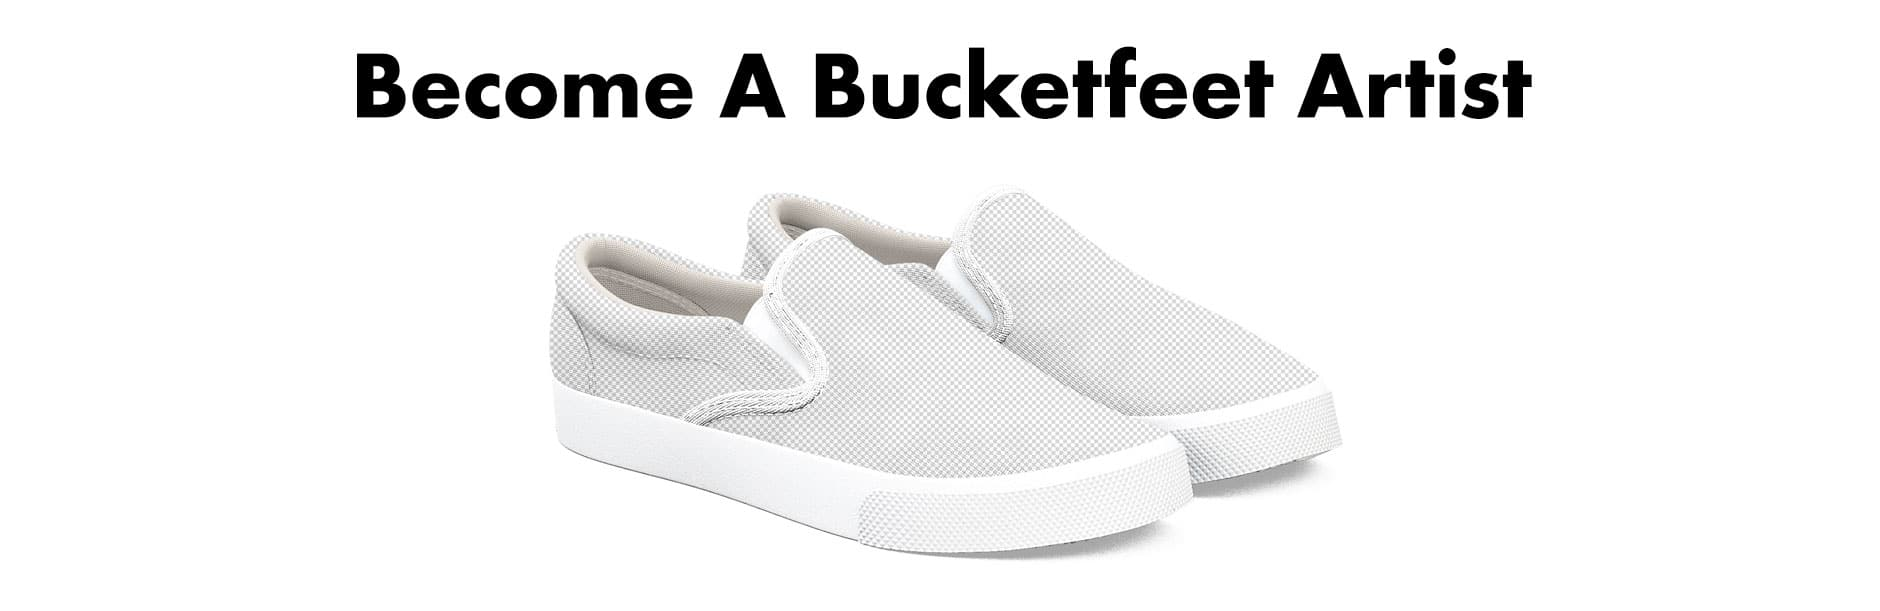 Become a Bucketfeet Artist